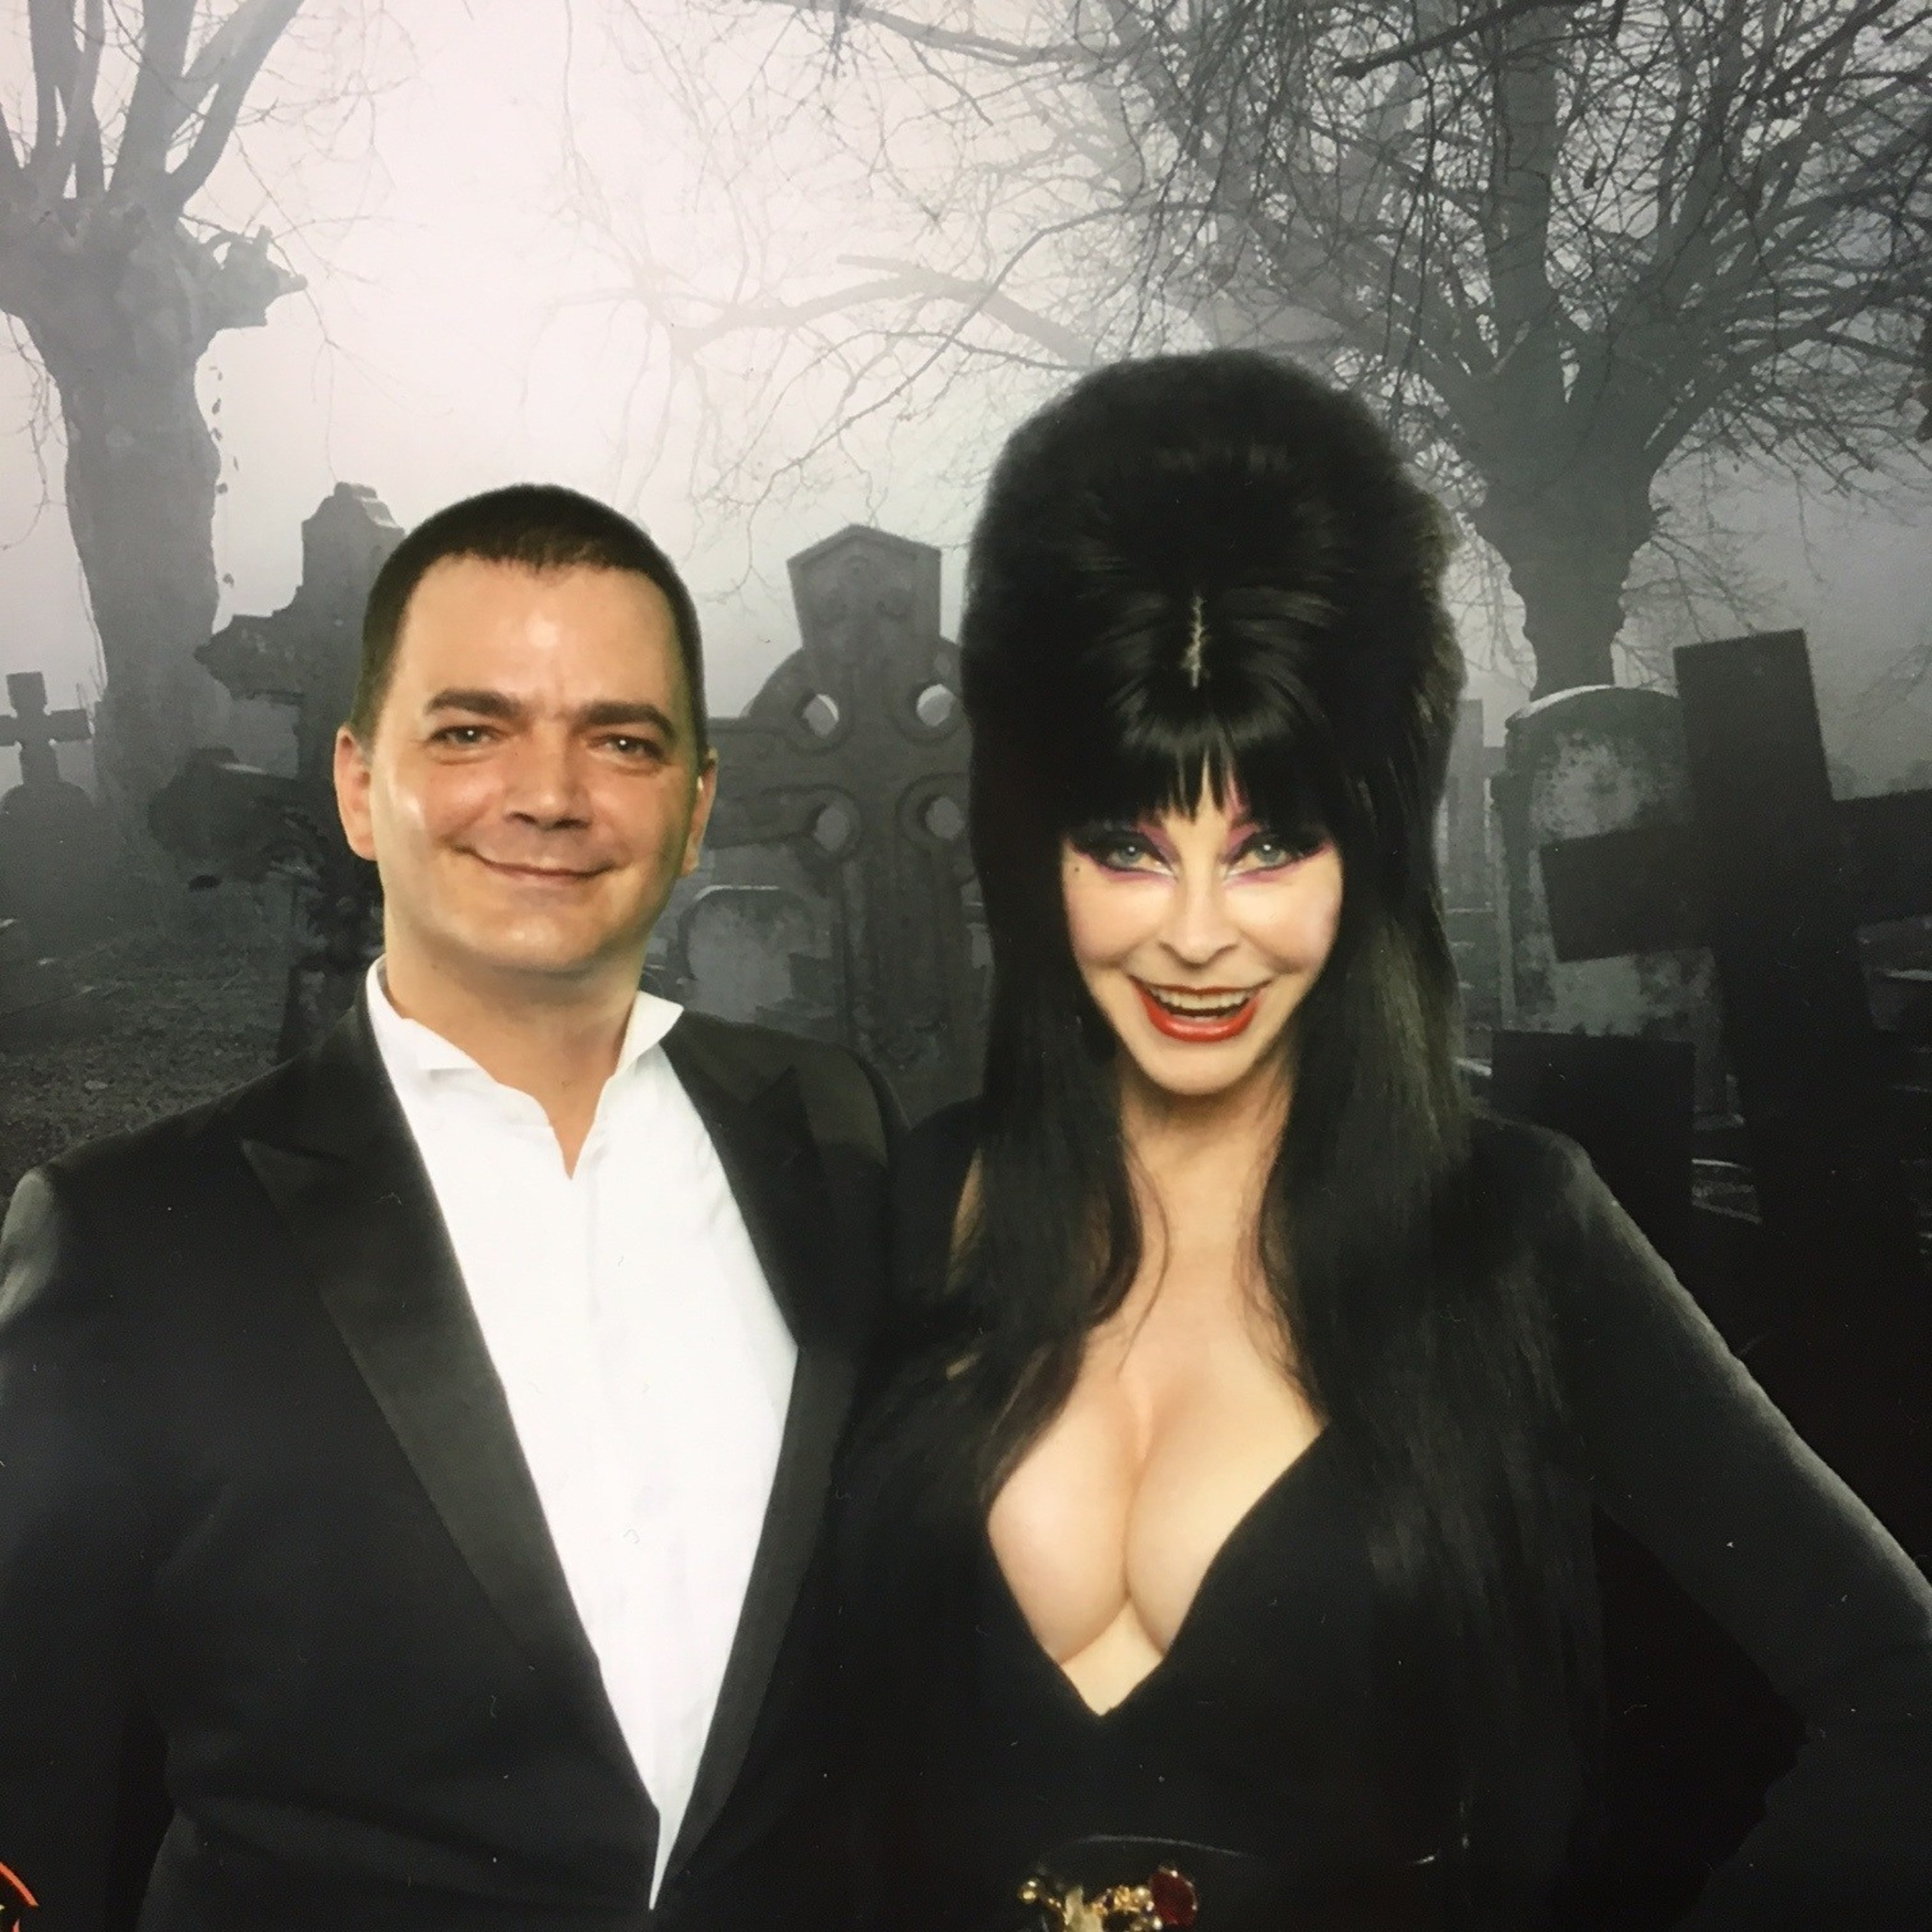 Elvira - Mistress of the Dark, Introduces the Next 'Monster Mash' Song